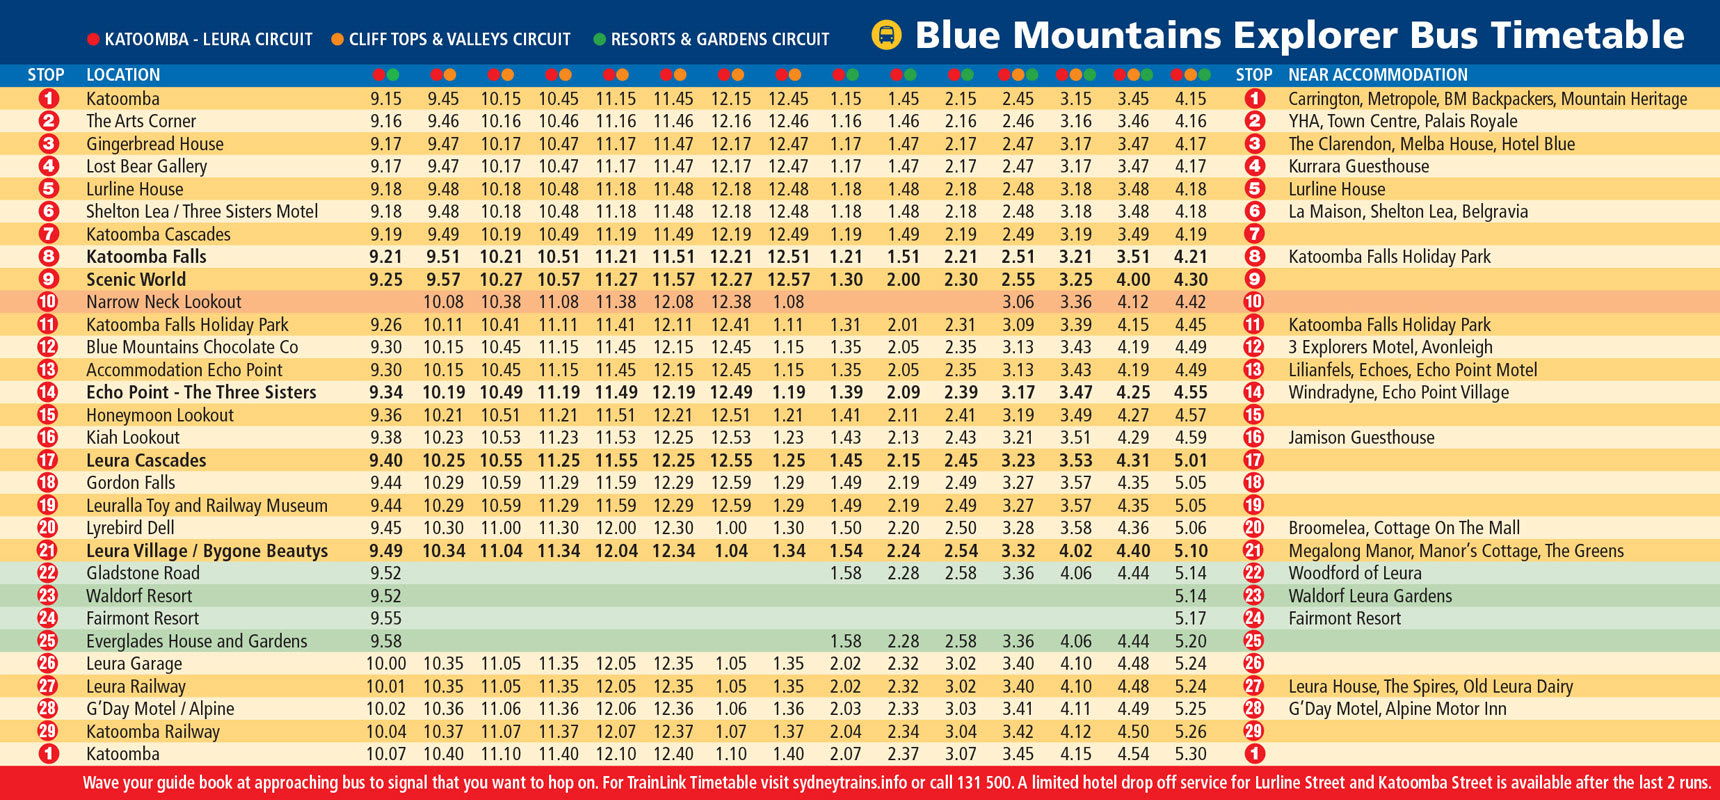 Blue Mountain Explorer Bus timetable http://www.explorerbus.com.au/map.html